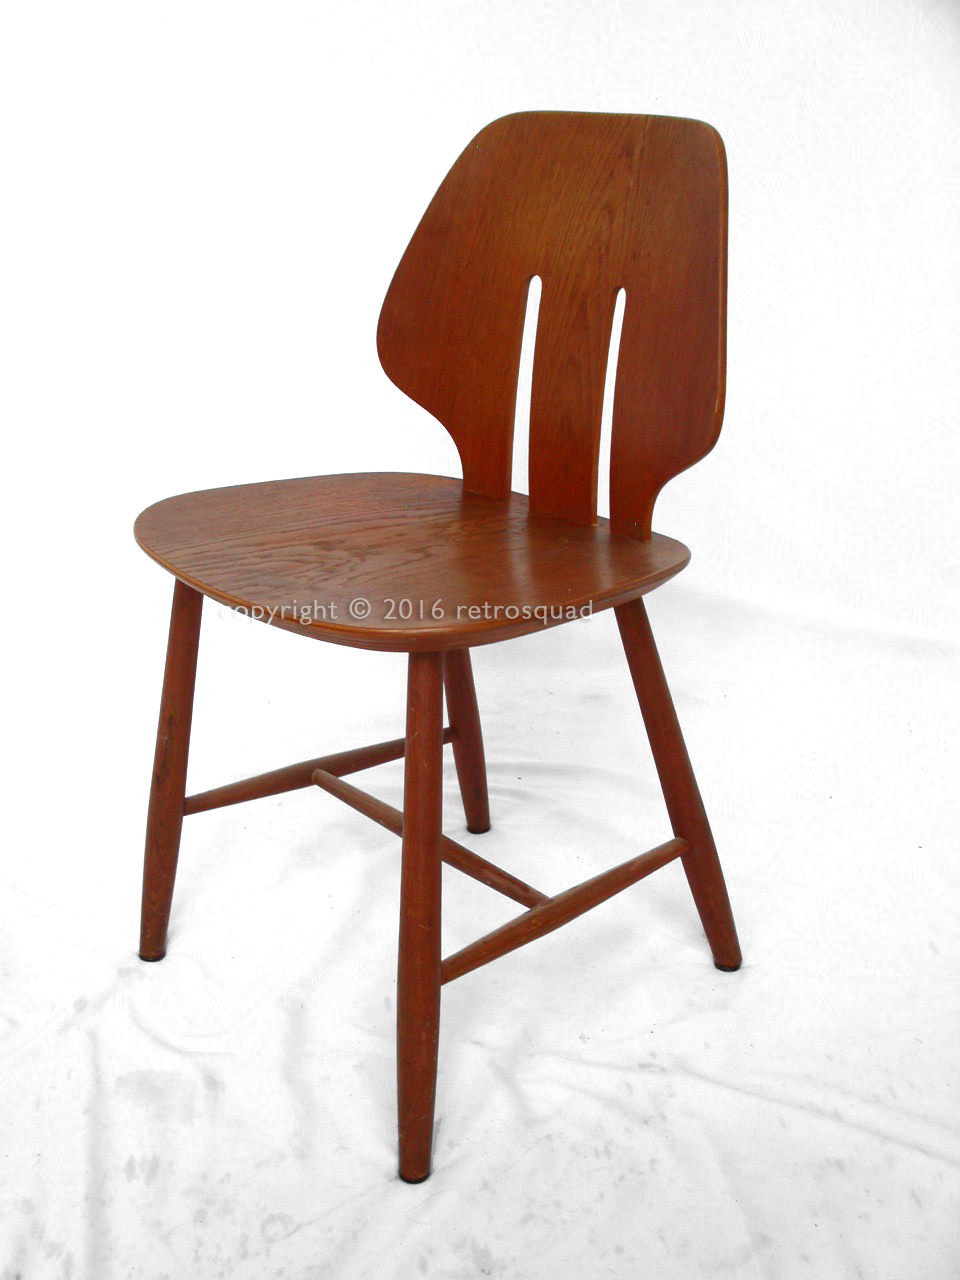 6 Modern Dining Chairs By Ejvind A. Johanss For FDB Mobler Vintage 1960 11